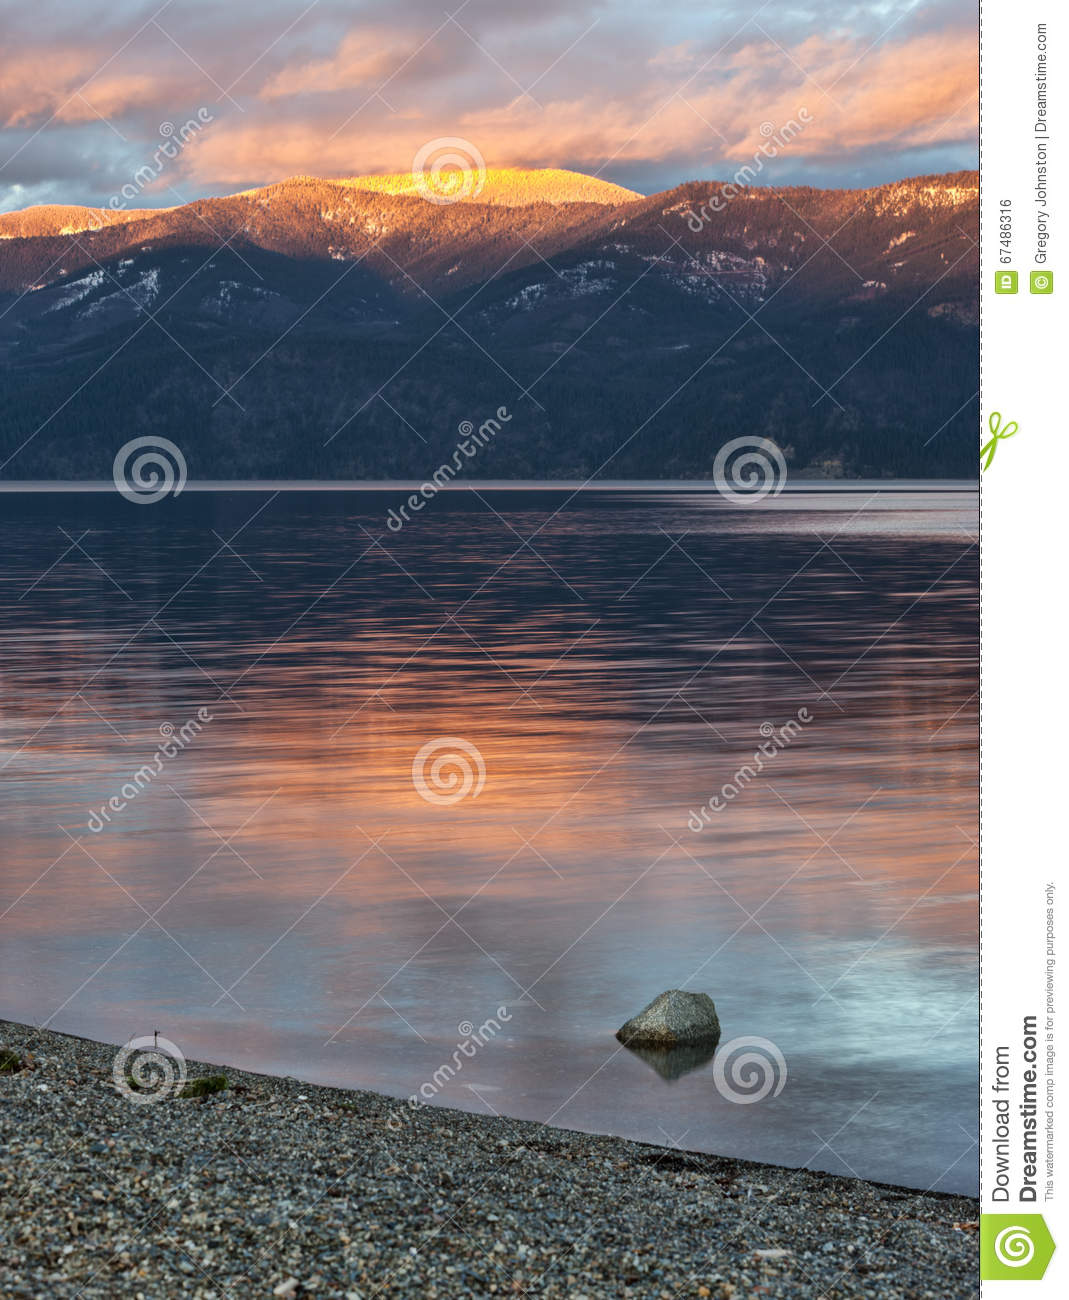 Pend Oreille See in Nord-Idaho